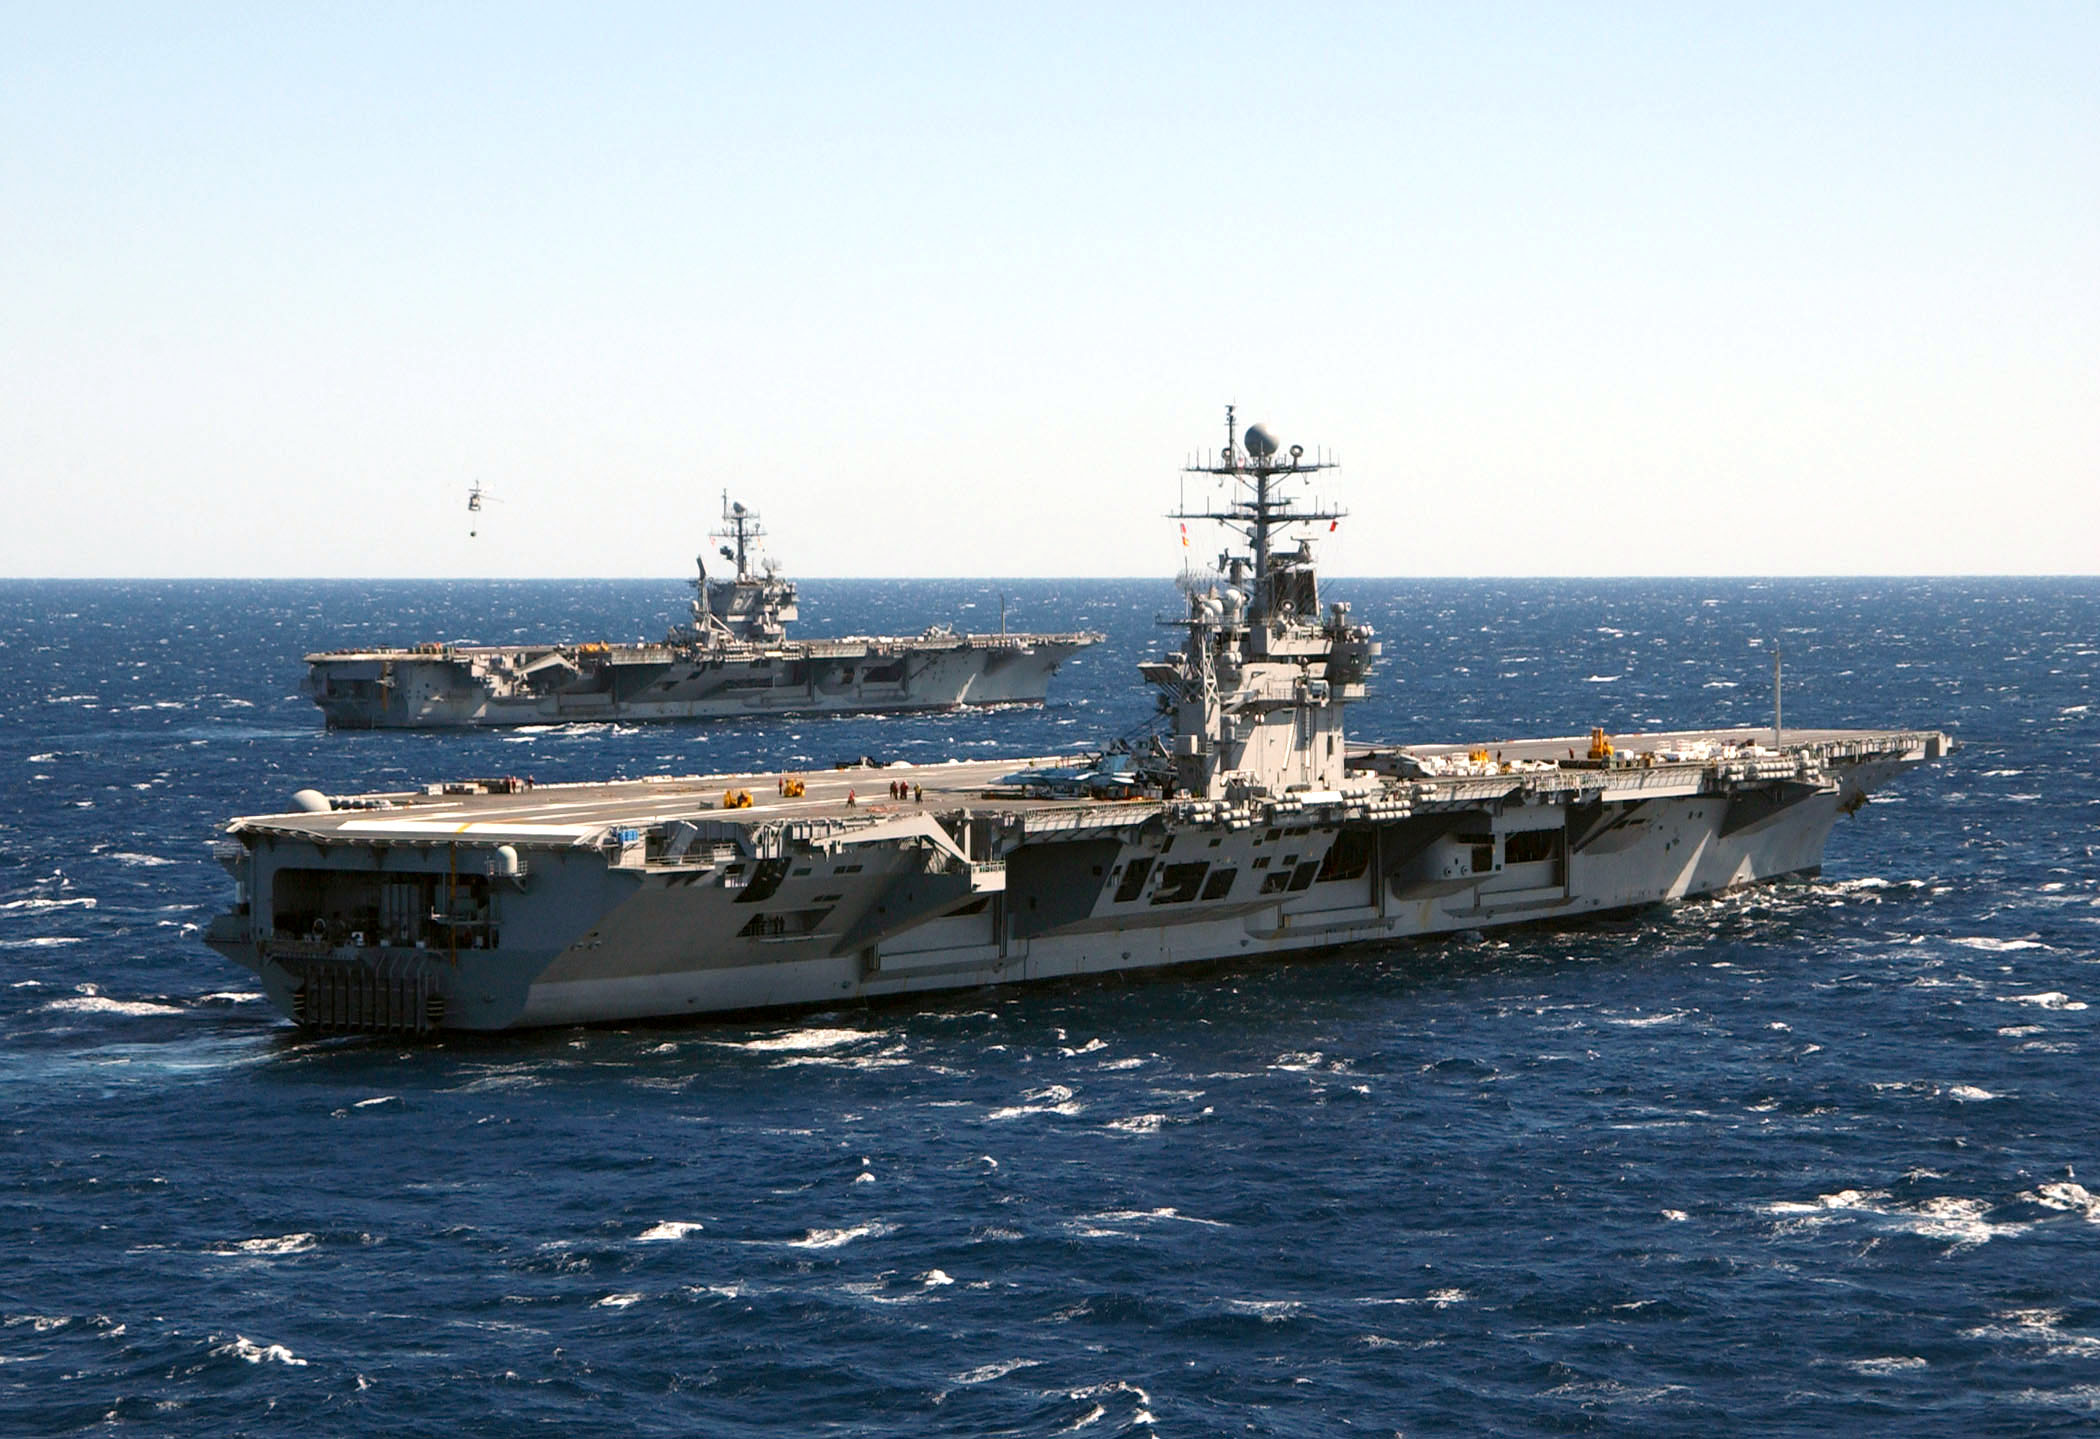 C 17 On Aircraft Carrier File:US Navy 050312-N-...